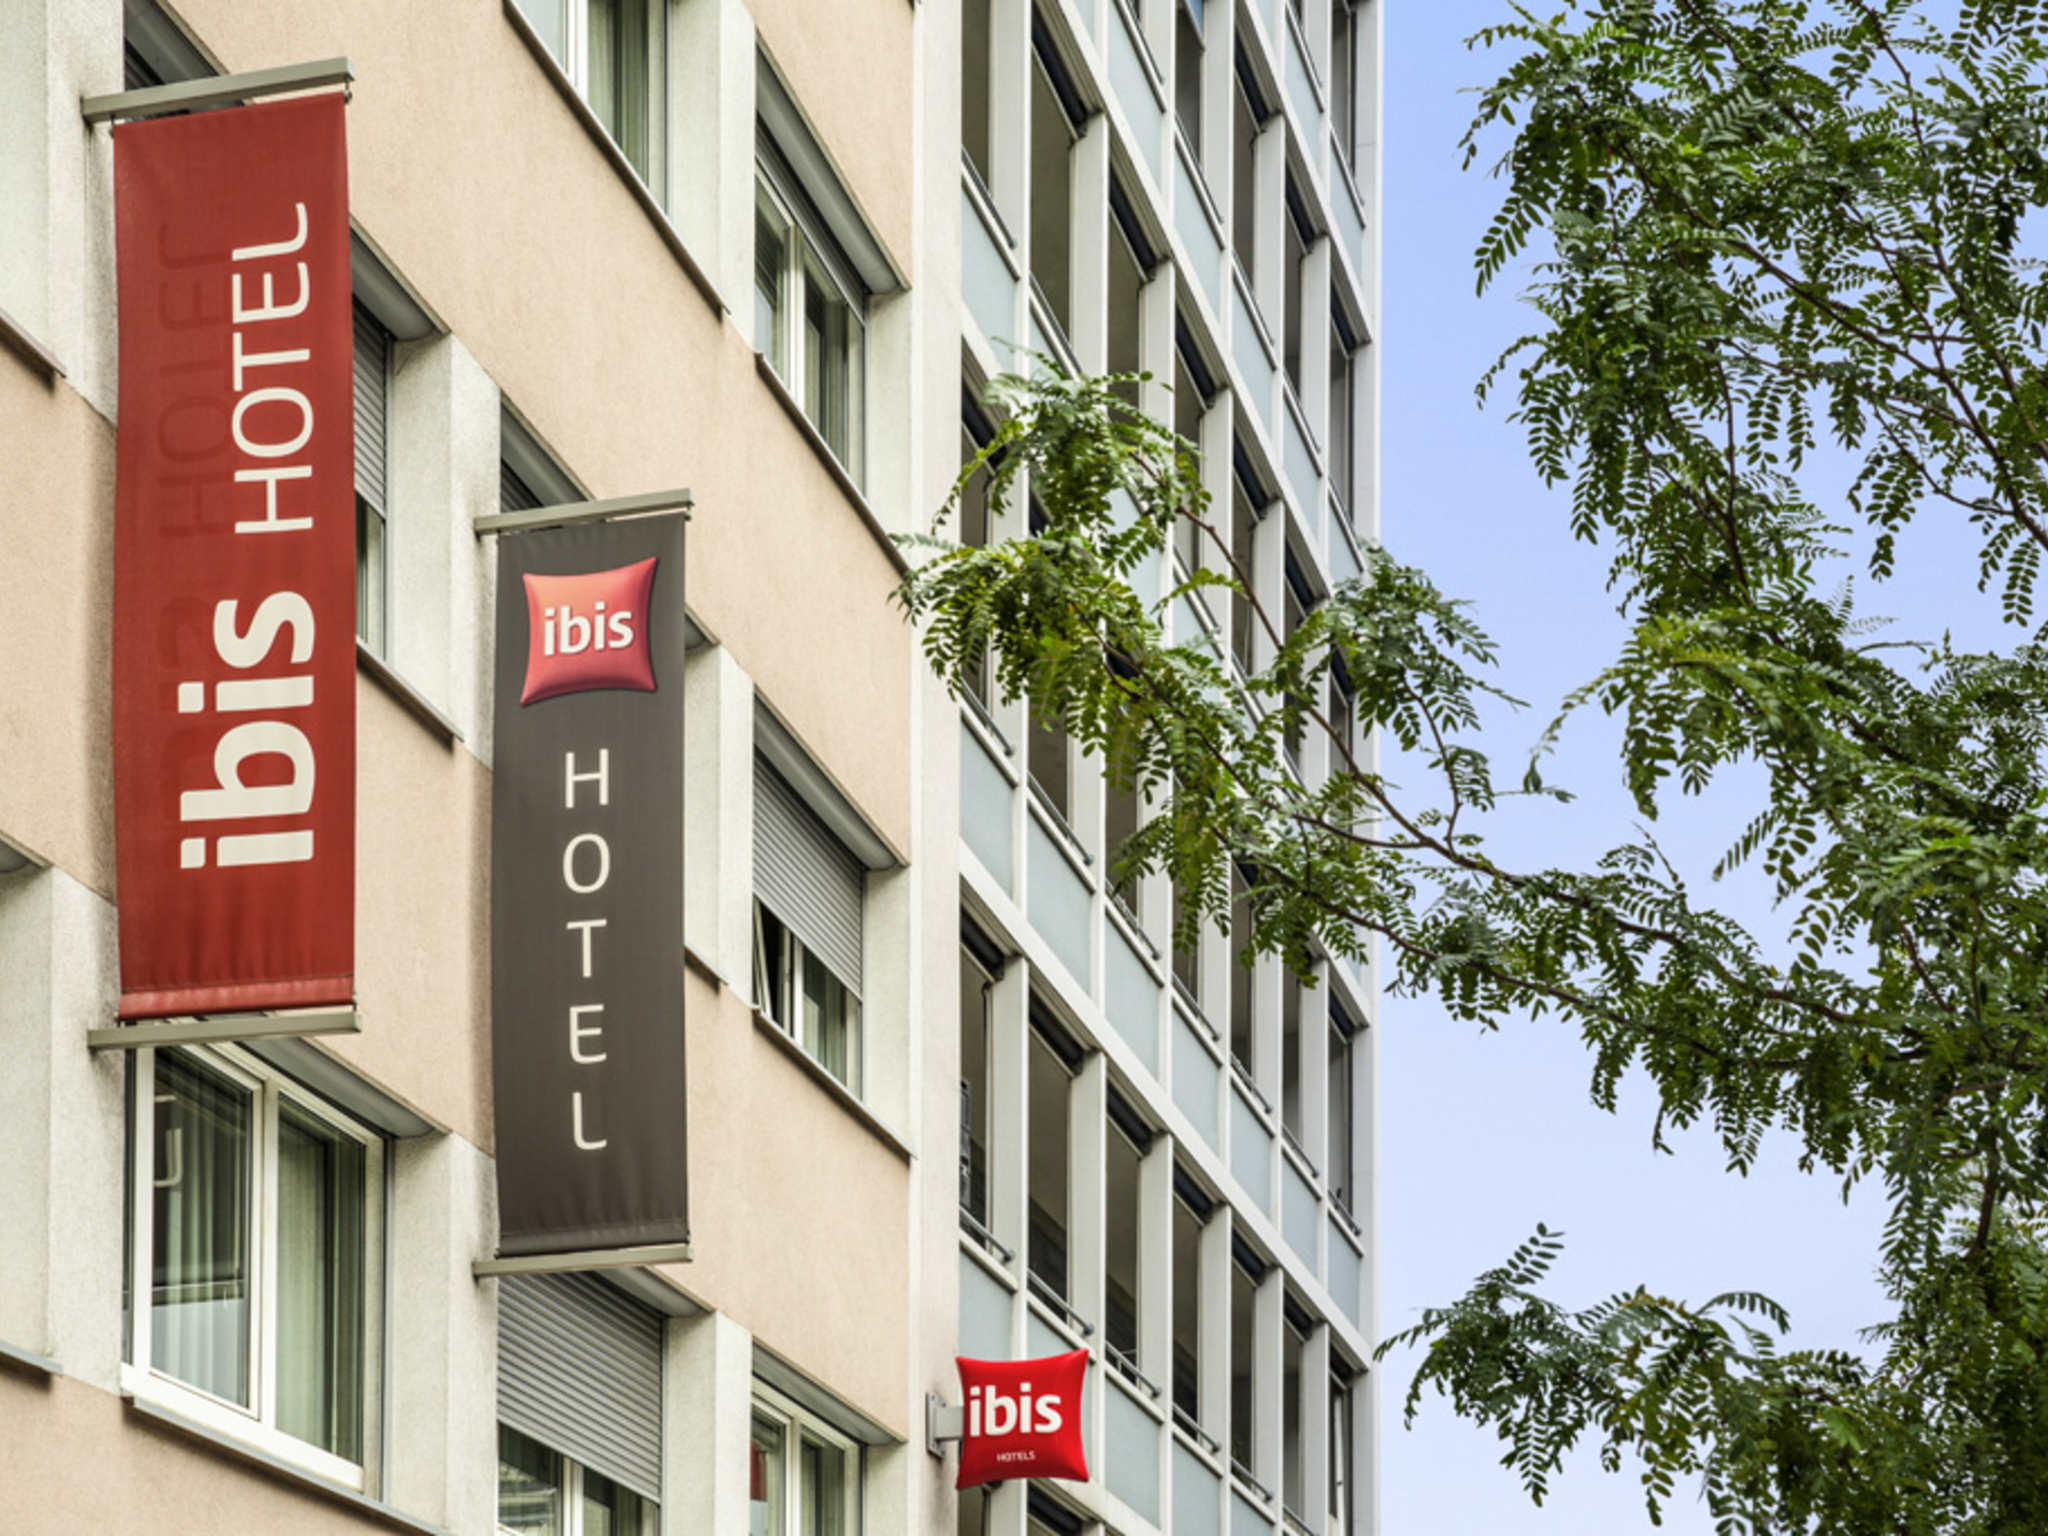 Hotell – ibis Genève Centre Gare